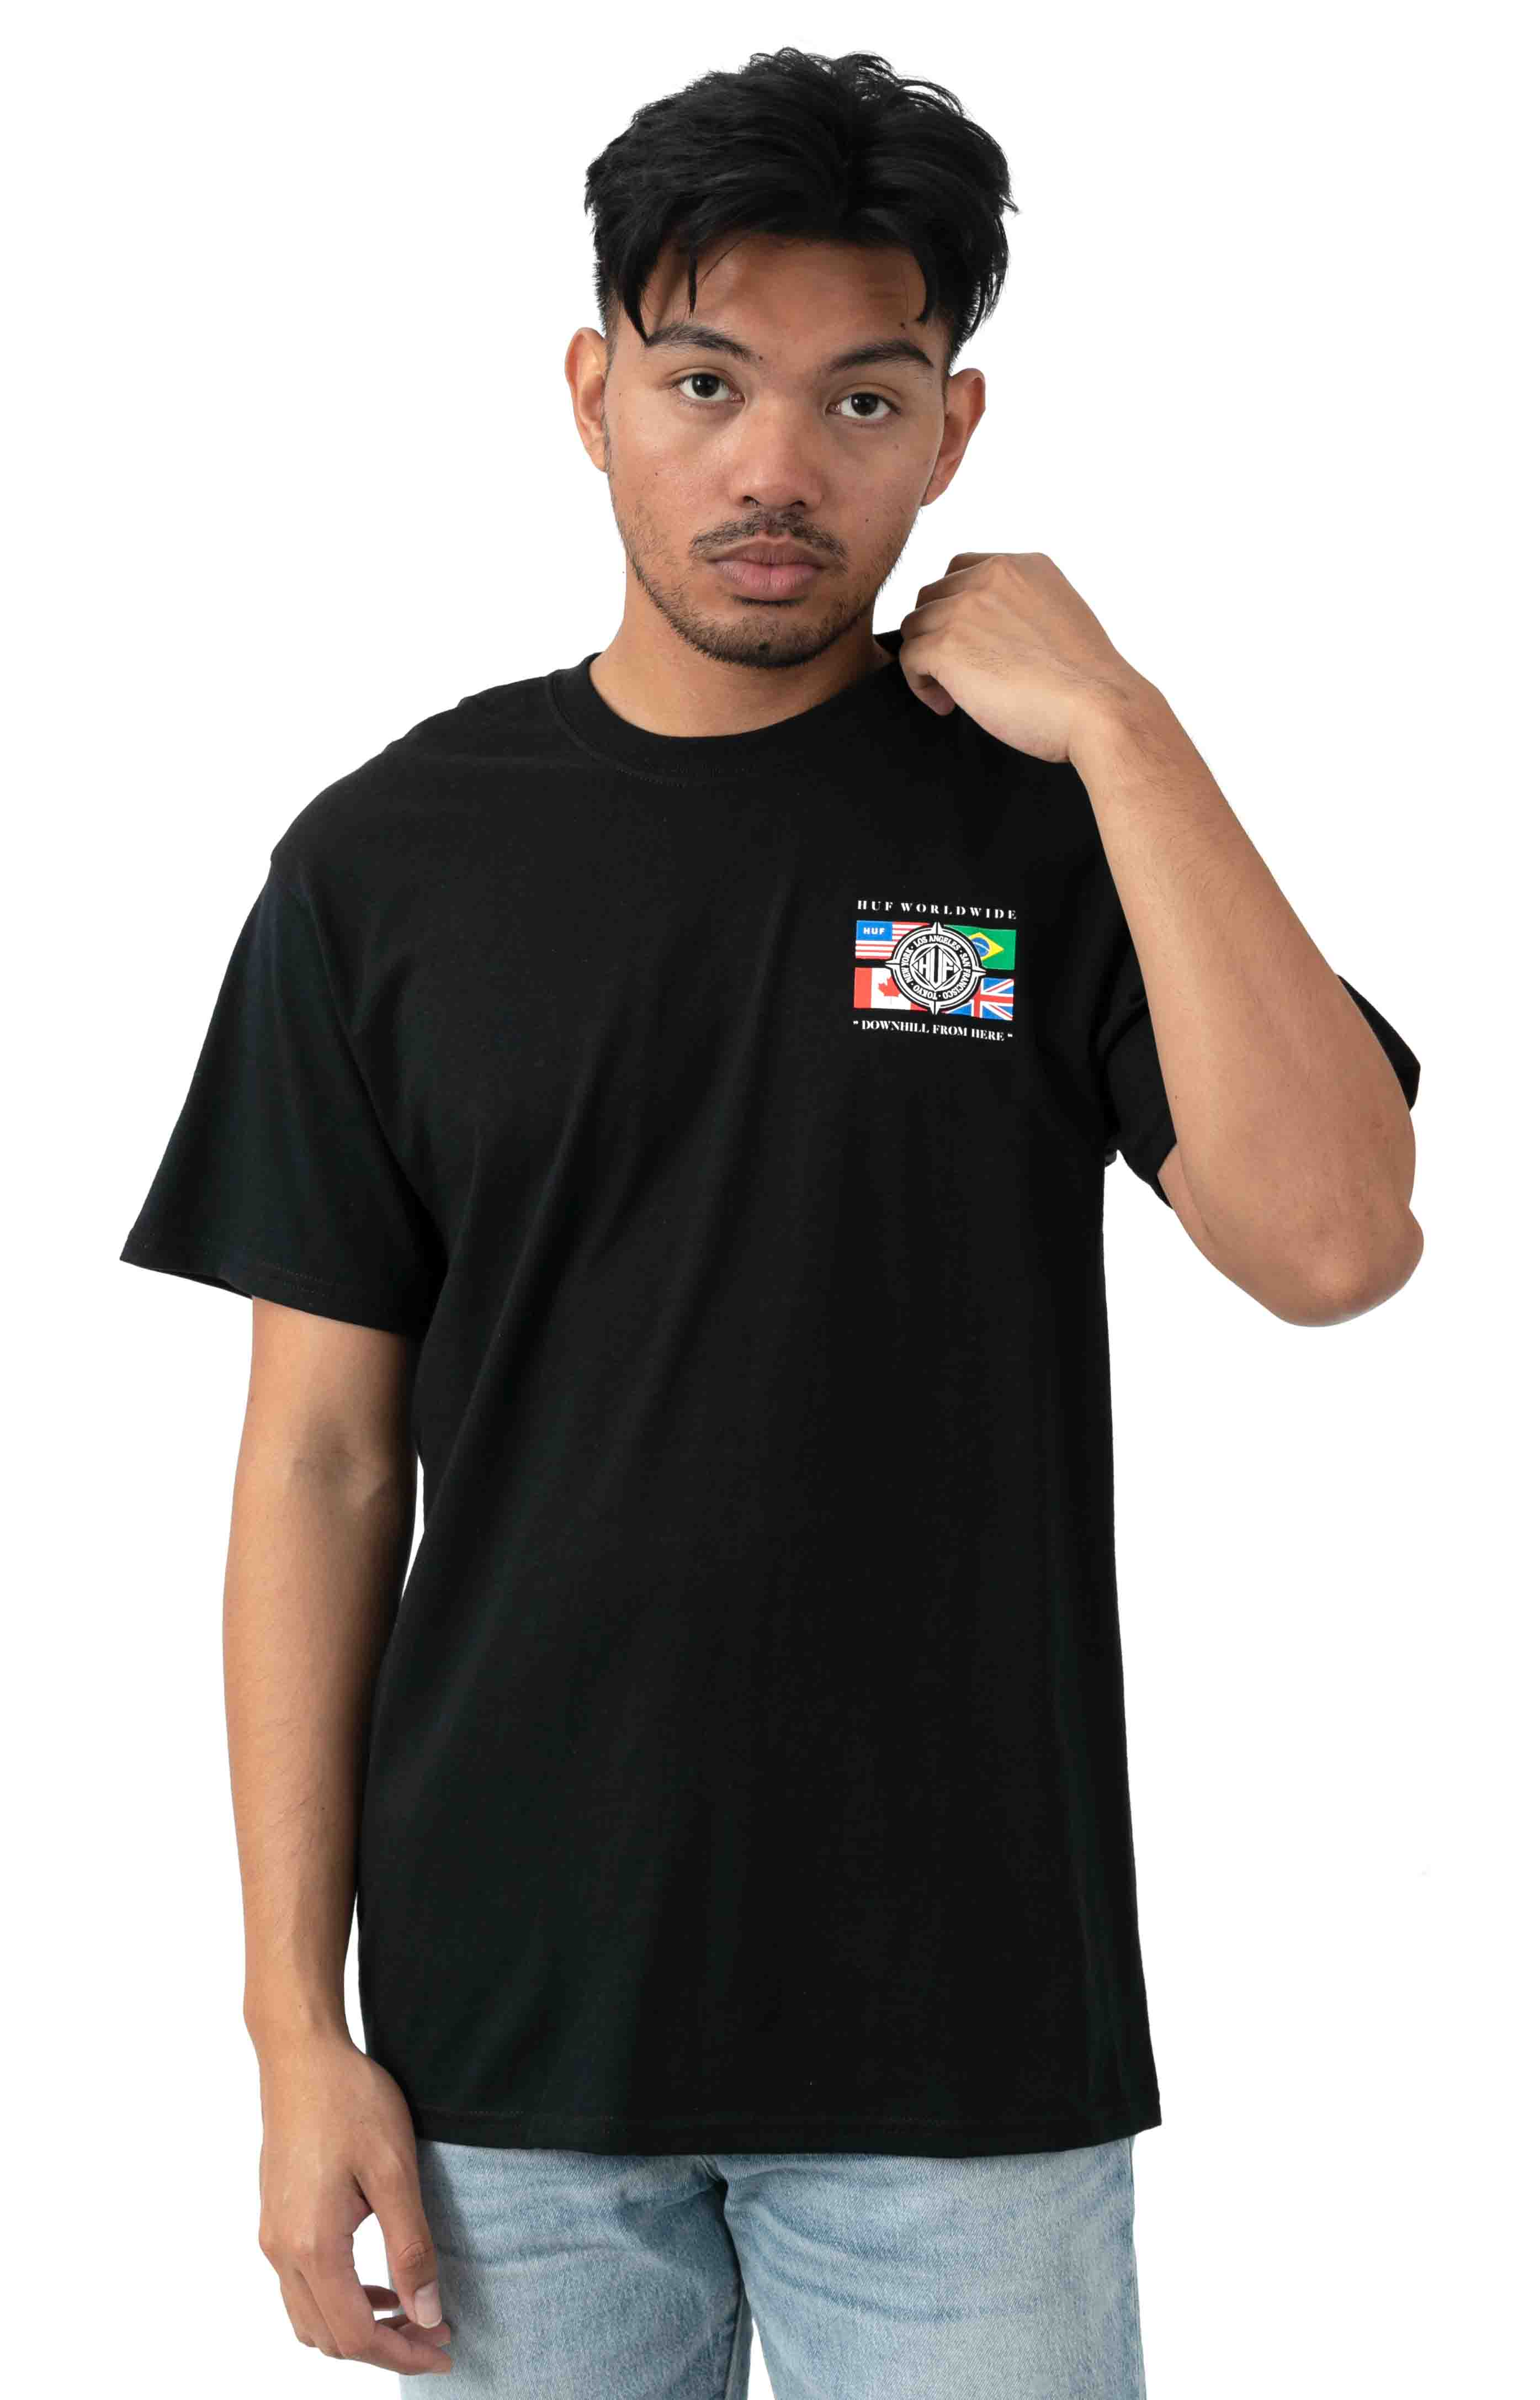 Global Wave T-Shirt - Black  2